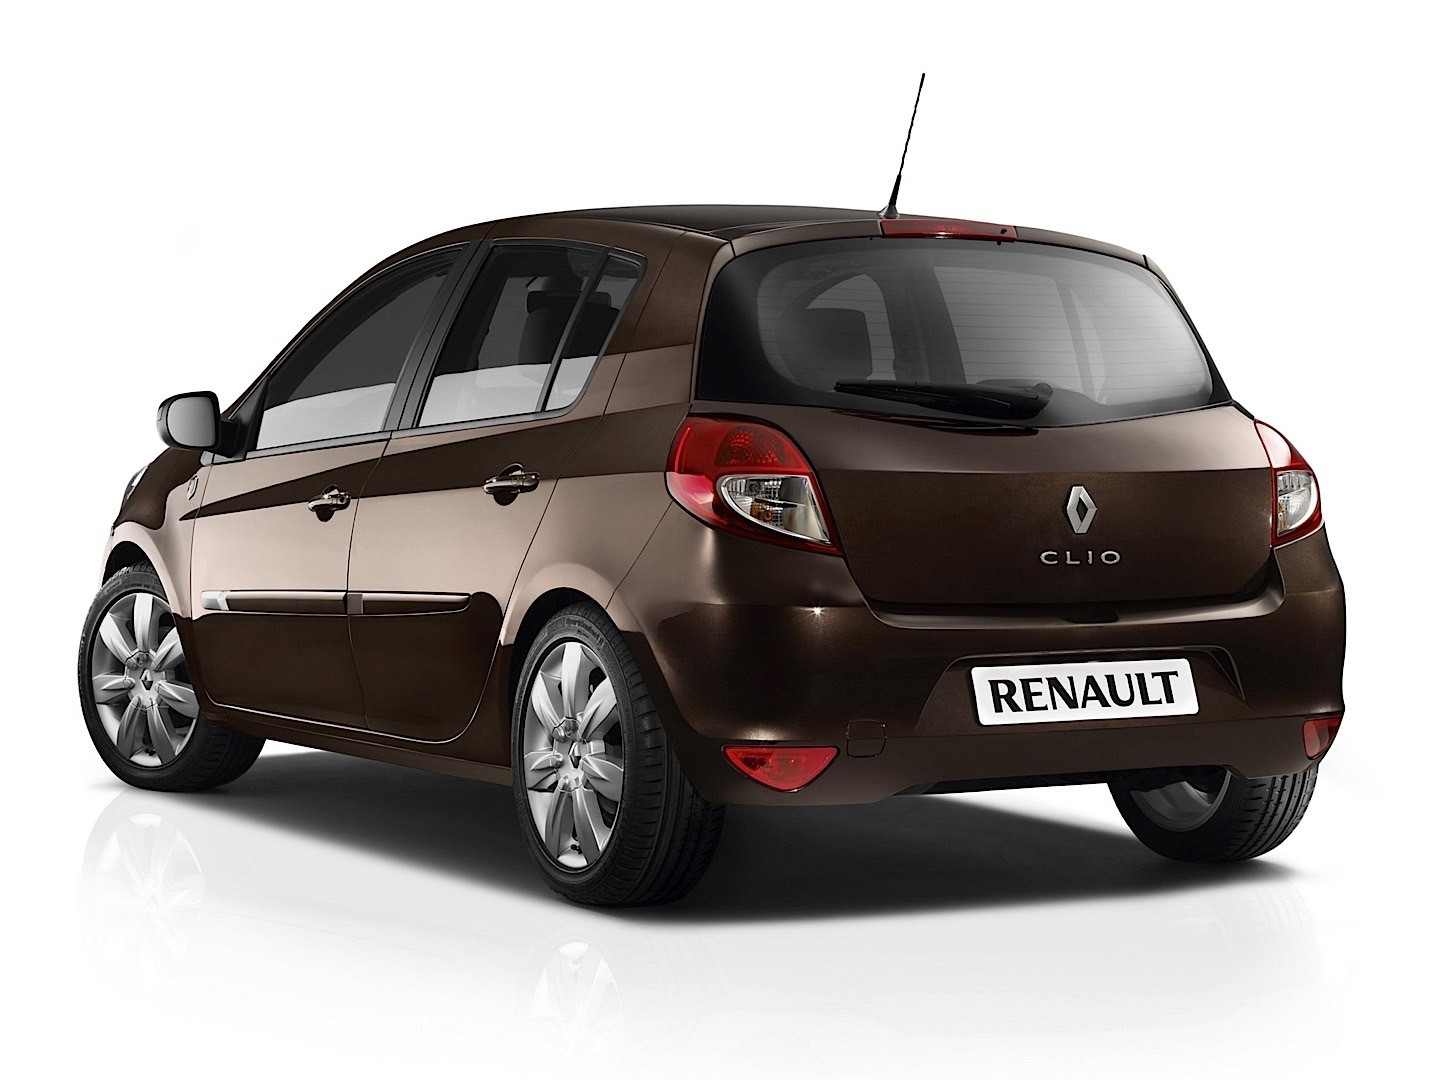 renault clio 5 doors specs 2009 2010 2011 2012. Black Bedroom Furniture Sets. Home Design Ideas